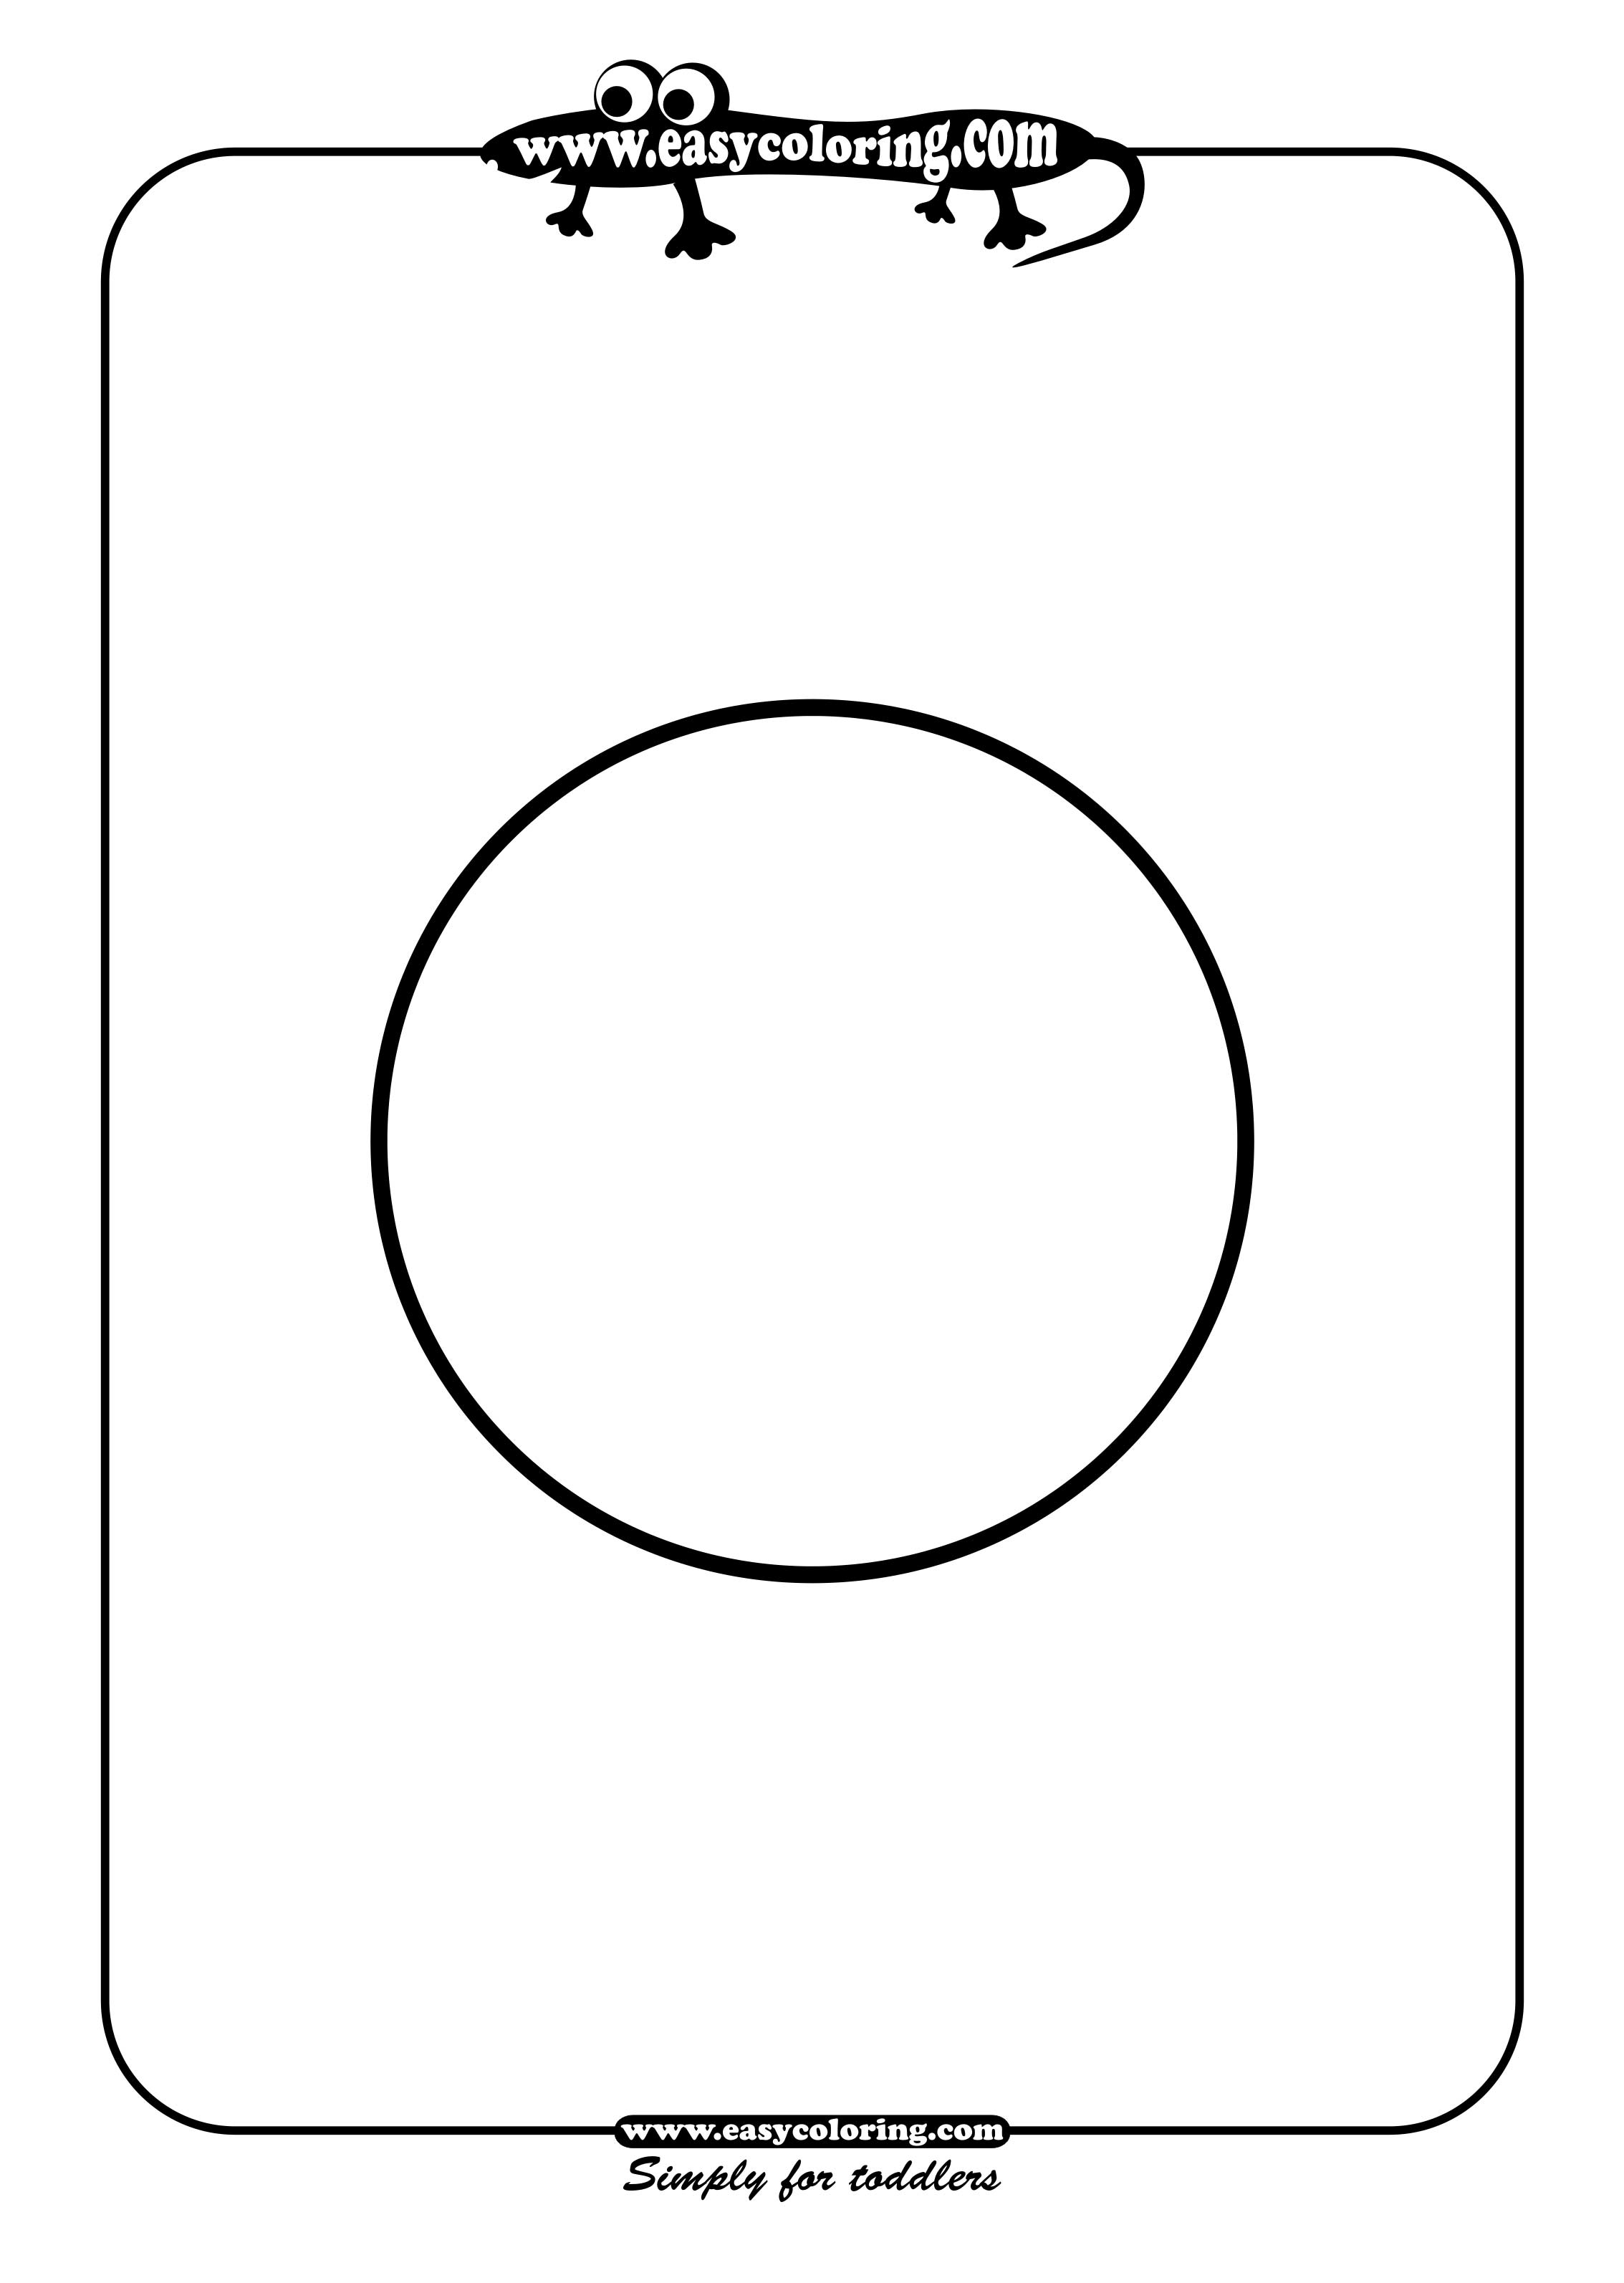 Round Simple Shapes Easy Coloring Pages For Toddlers